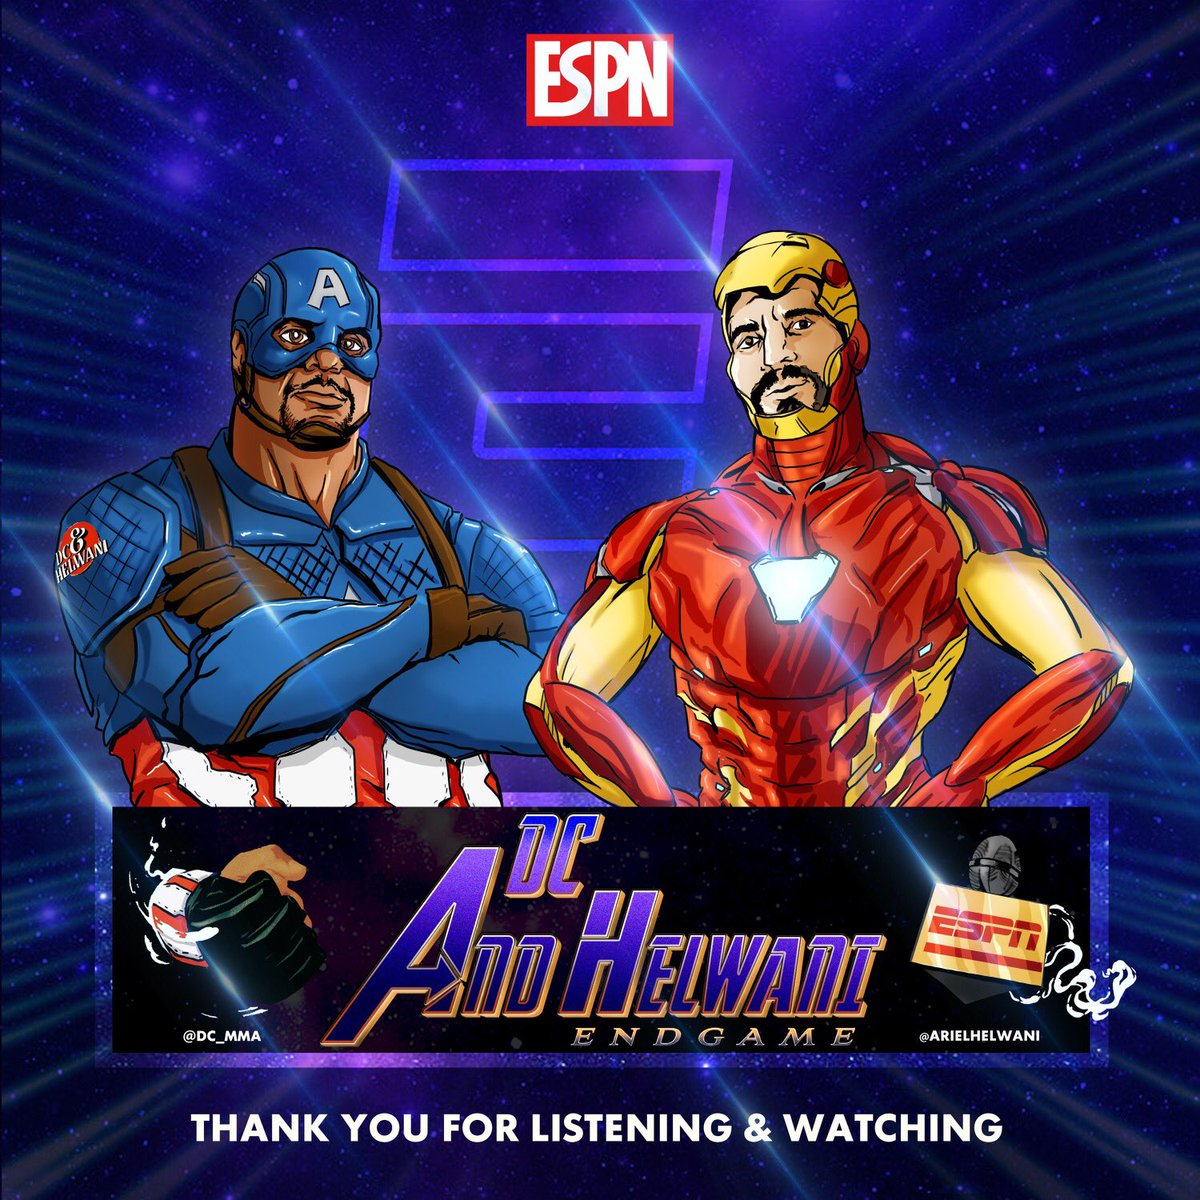 about to do our last episode of the DC and Helwani. It's been so much fun doing the show,we started right in the middle of the pandemic and we end right as the world starts to open back up. I could not have done this with a better person than my guy Ariel. https://t.co/AzdVVptcnD https://t.co/kBqcyQoYi2